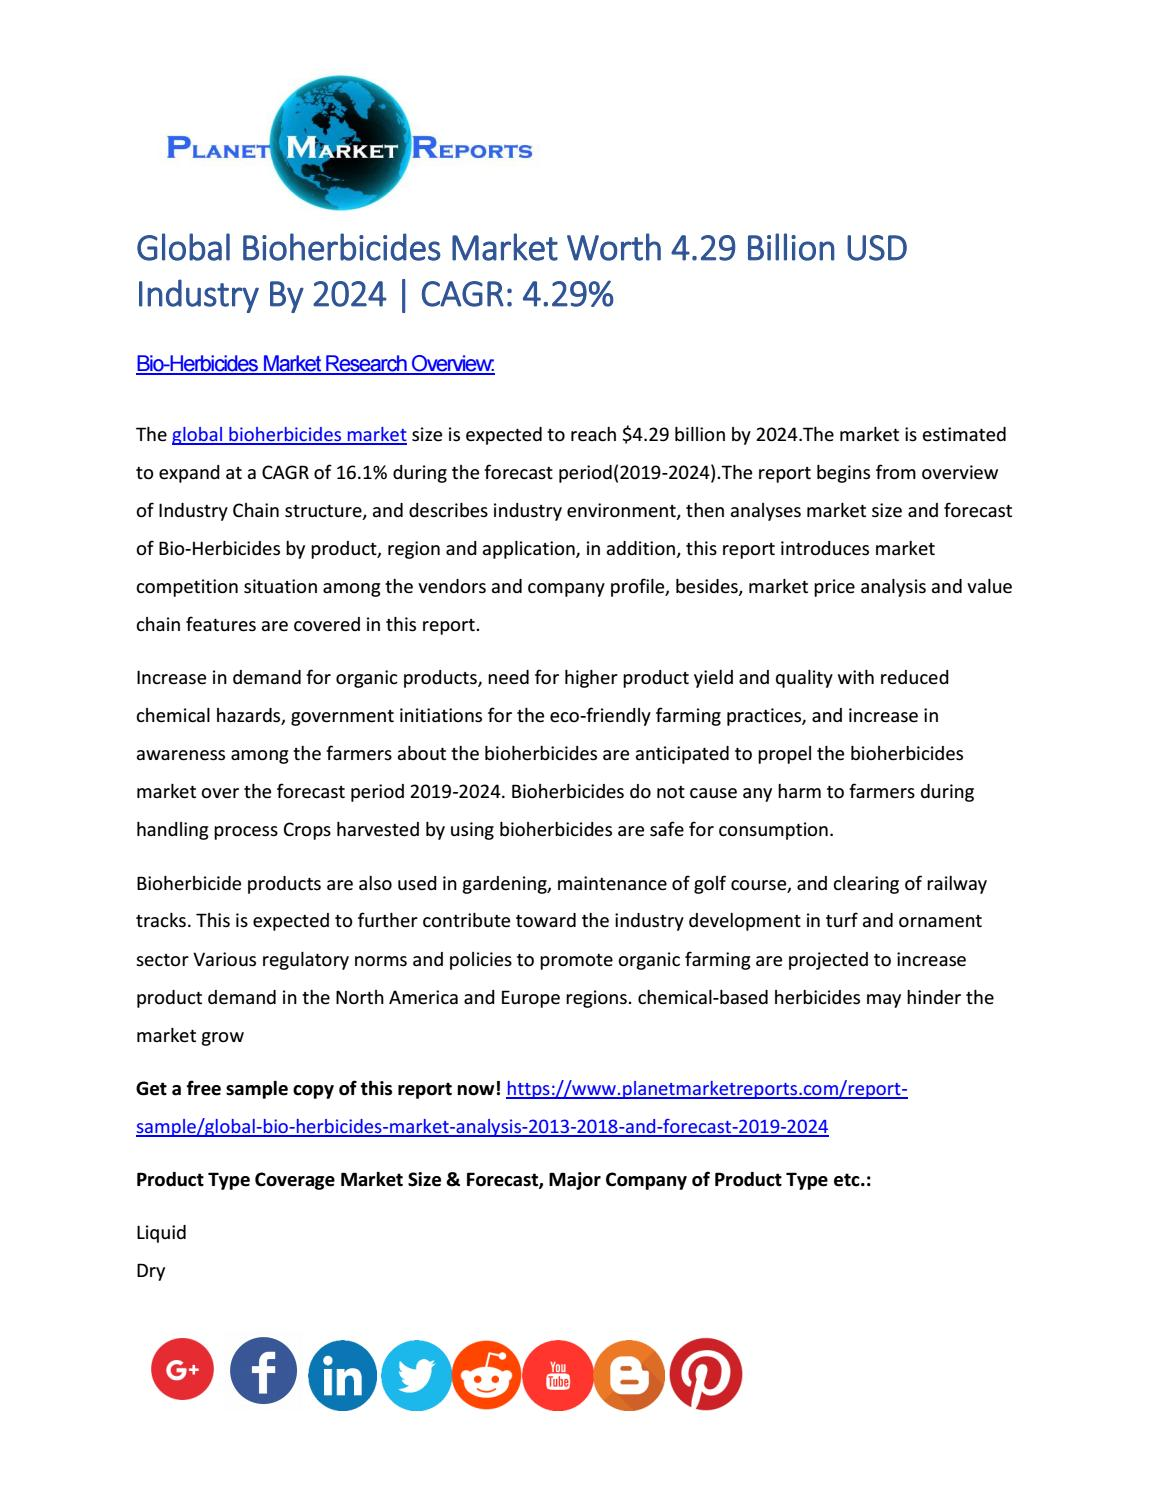 Global Bioherbicides Market Size, Industry Growth Analysis